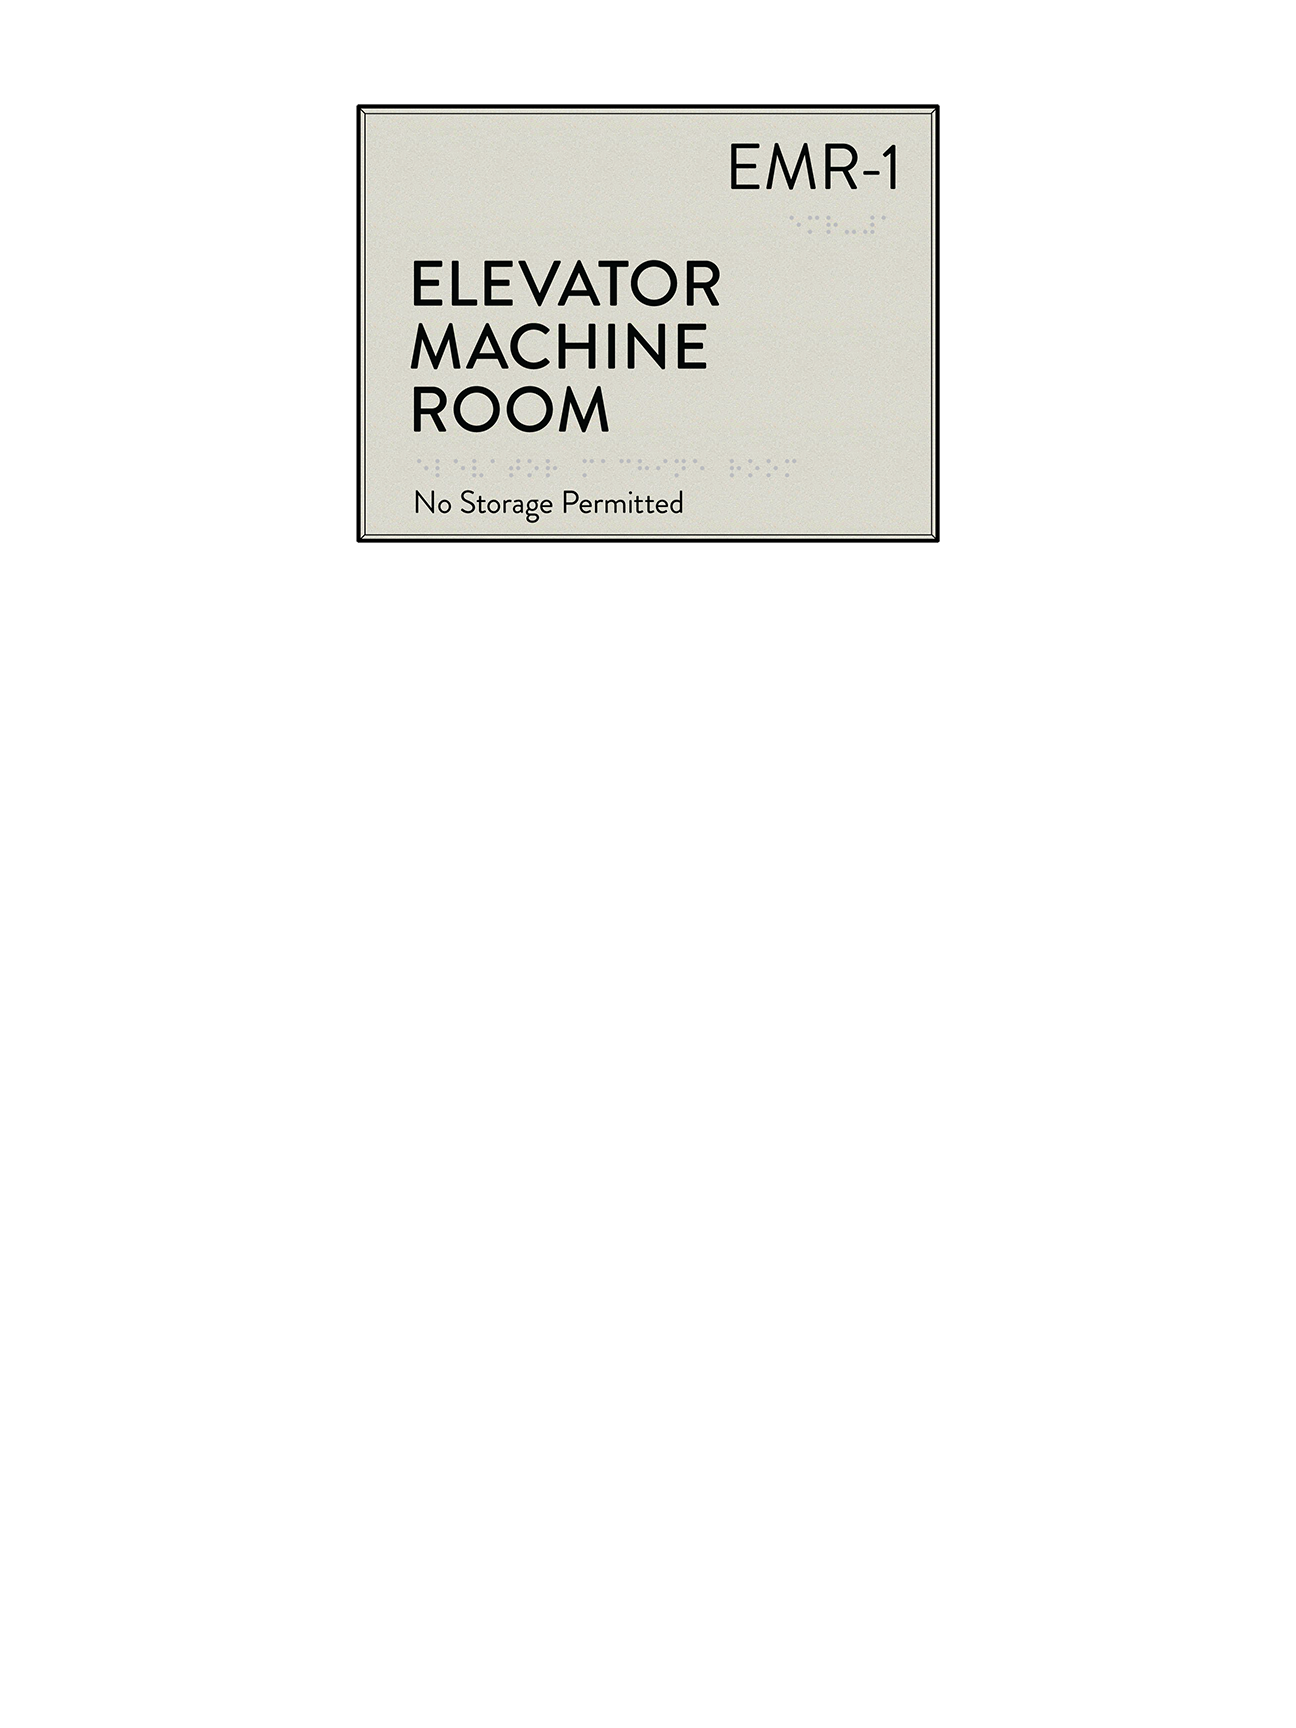 Utility Room Sign Amazing Price Request  Cascade Architectural Sign Family  Identia Sign Inspiration Design